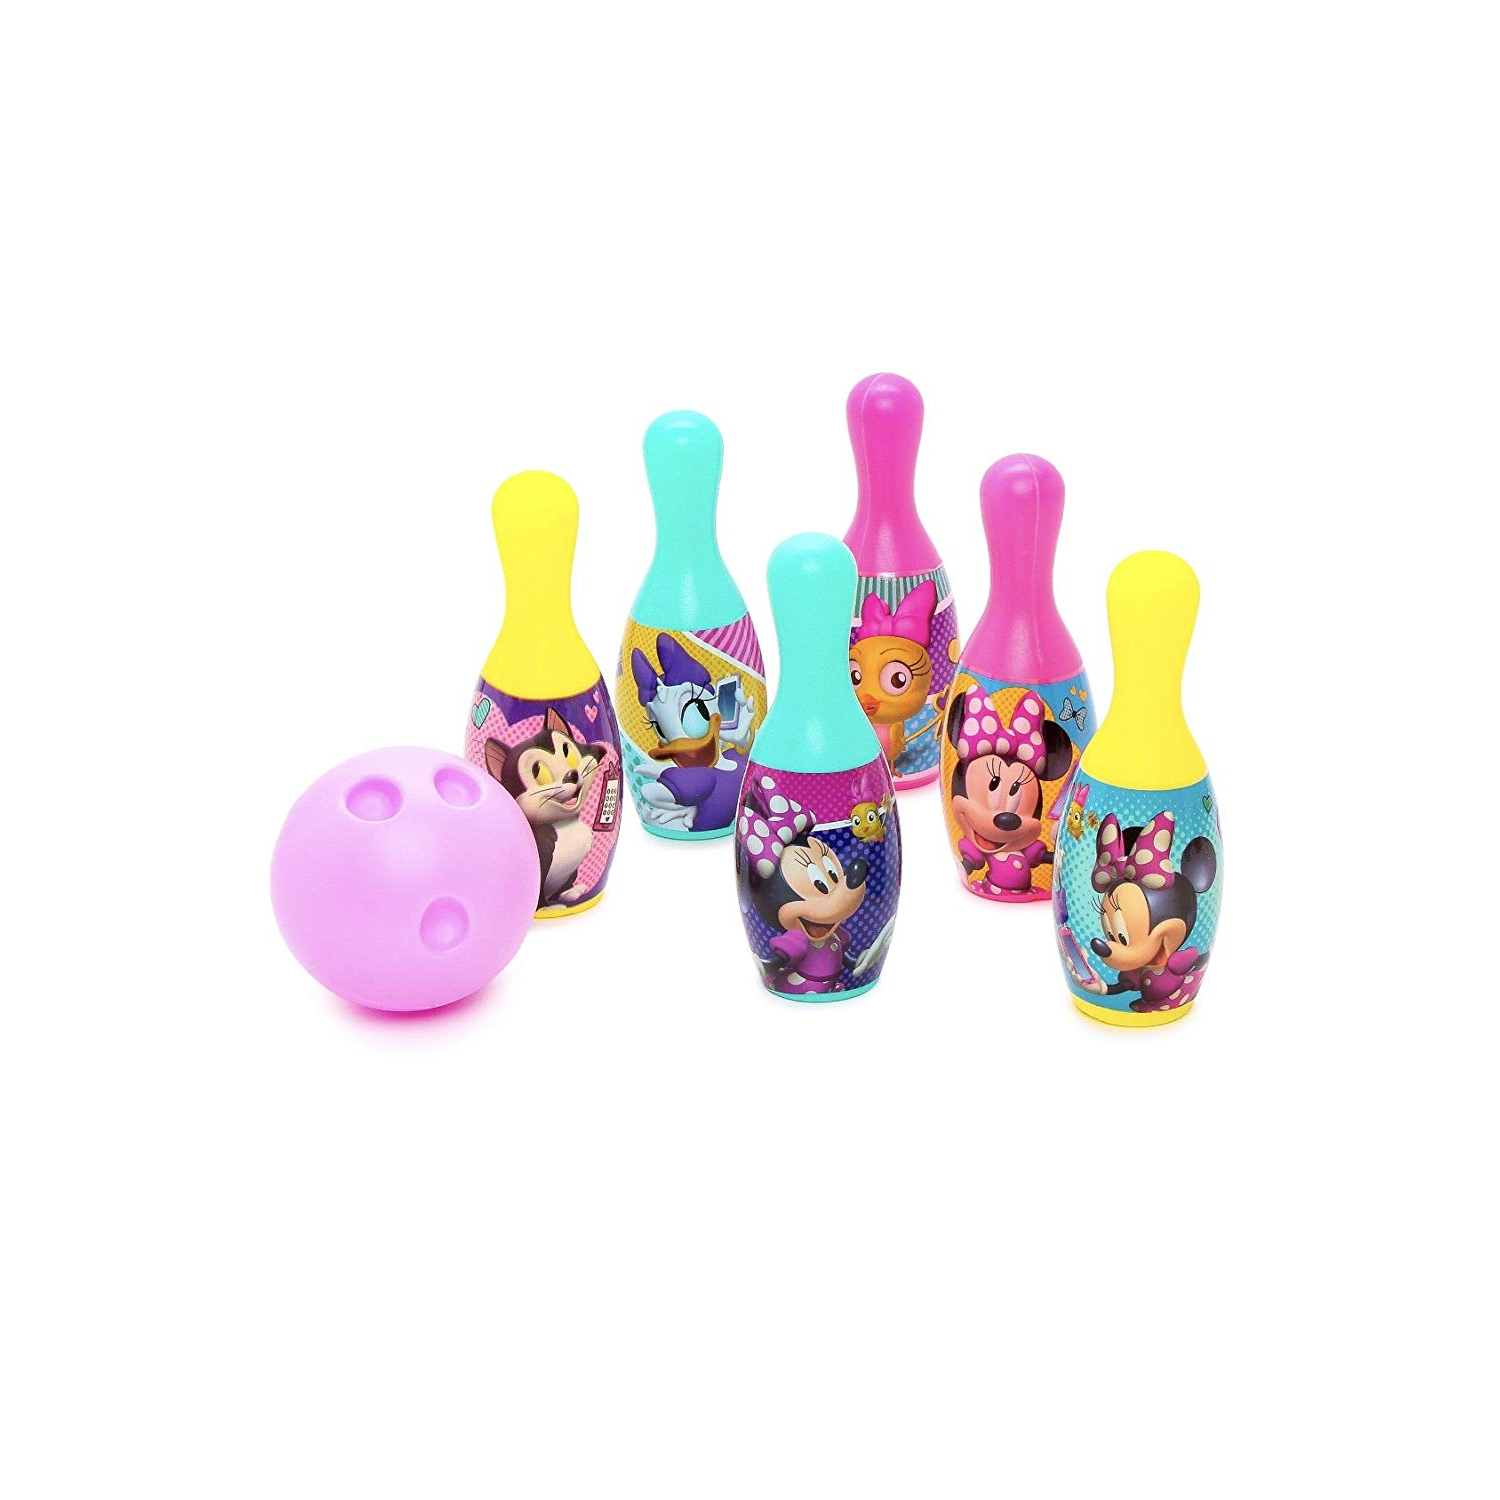 Disney Minnie Mouse Bowtique Bowling Pin Party Indoor Outdoor Family Play Set